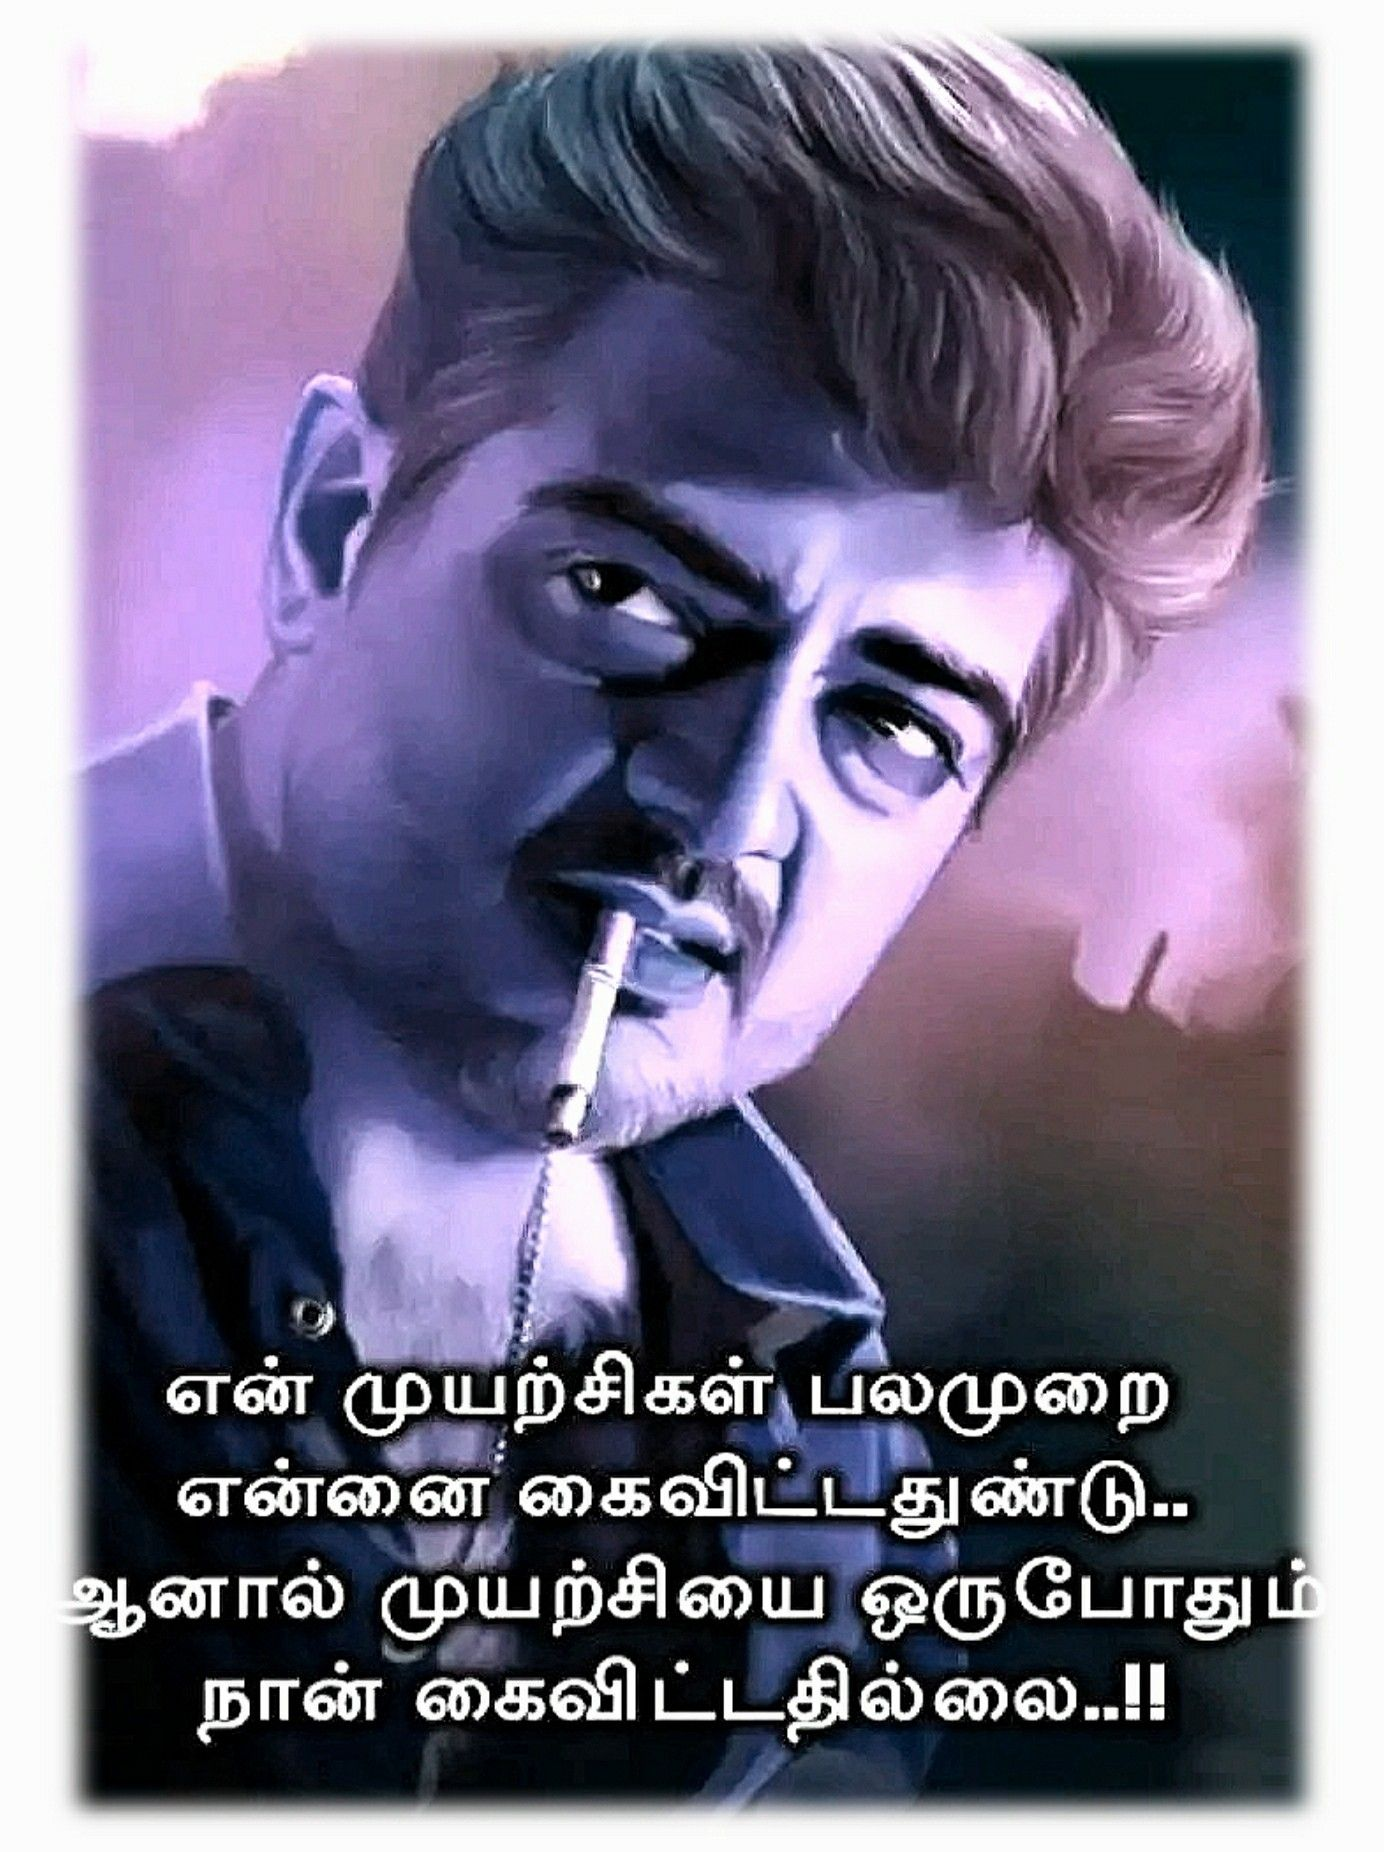 Pin By Arulmary On Vasu Chittoor Tamil Photo Album Quote Love Feeling Images Like Quotes